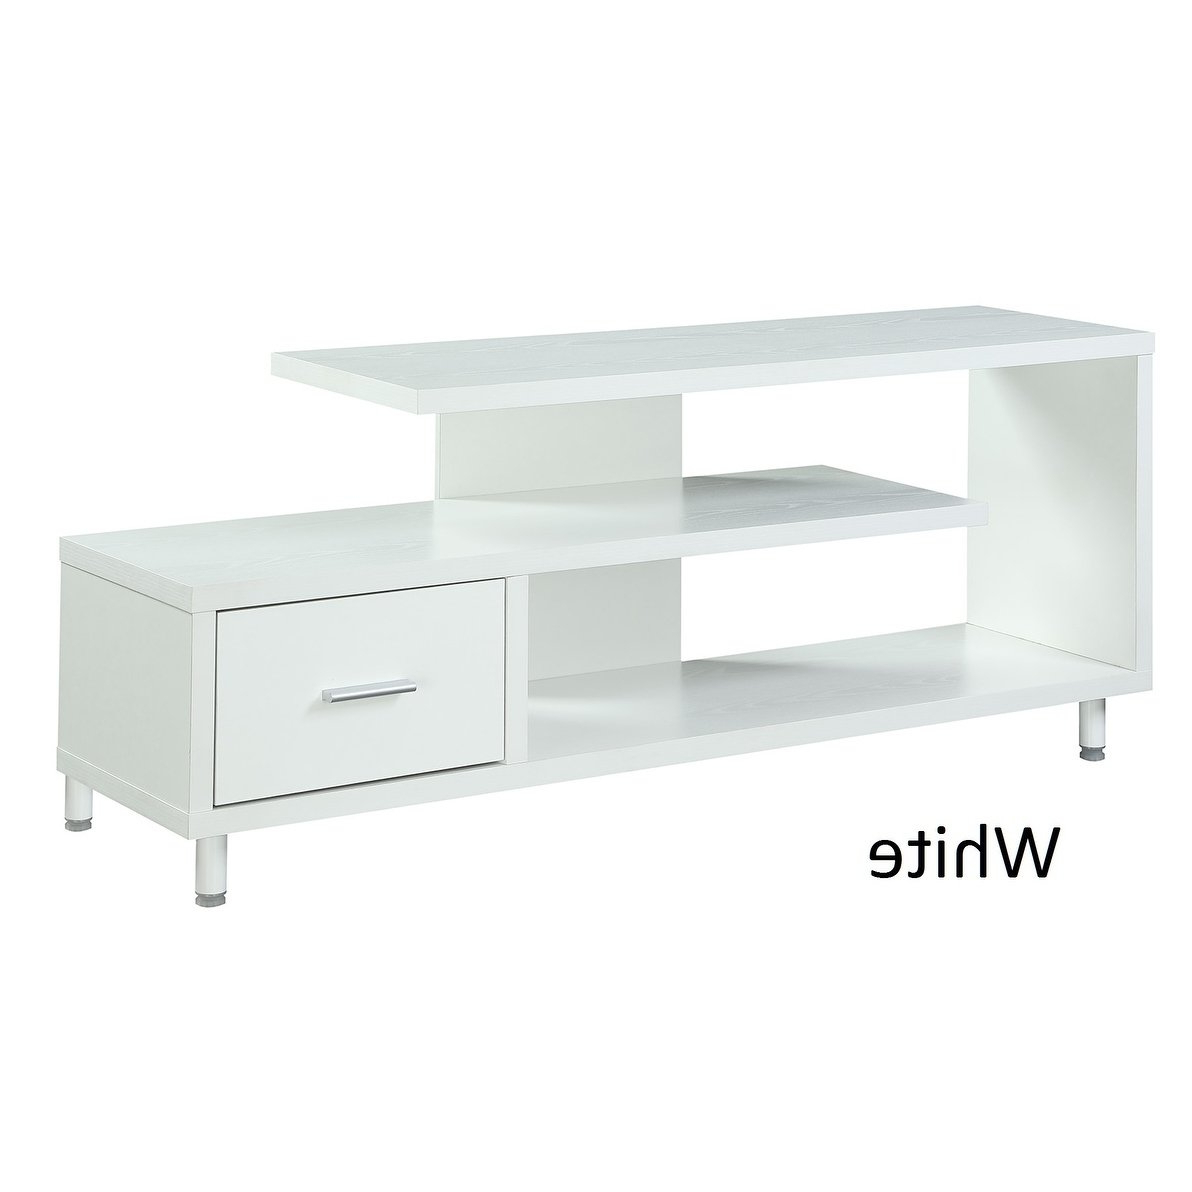 Most Popular White High Gloss Oval Tv Stand With Modern Plus And Glass Together With Regard To White Gloss Oval Tv Stands (View 9 of 20)